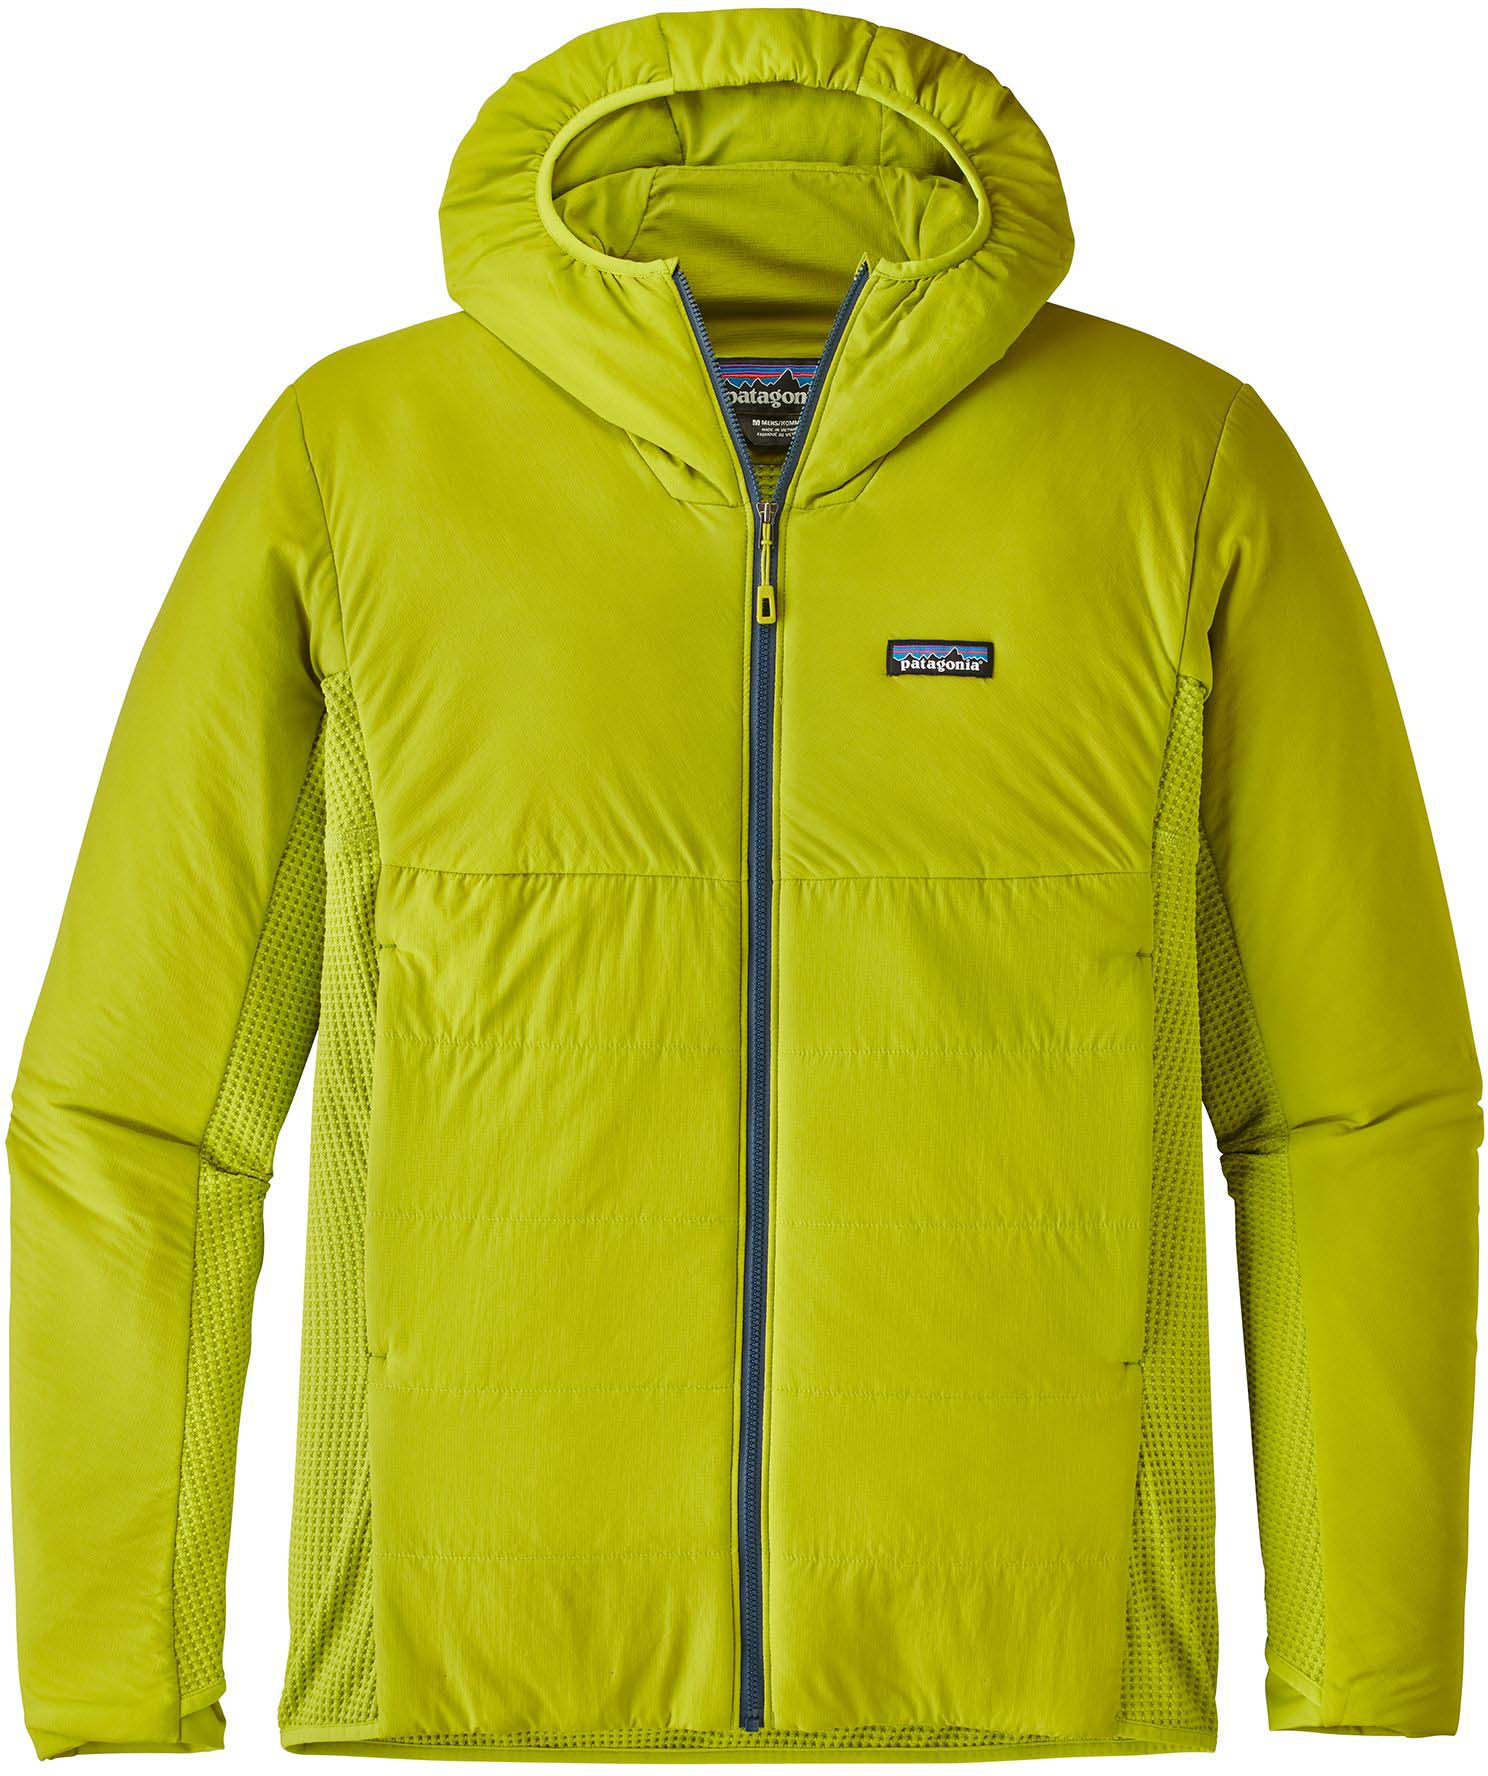 image patagonia-nano-air-light-hybrid-hoody-green-jpg